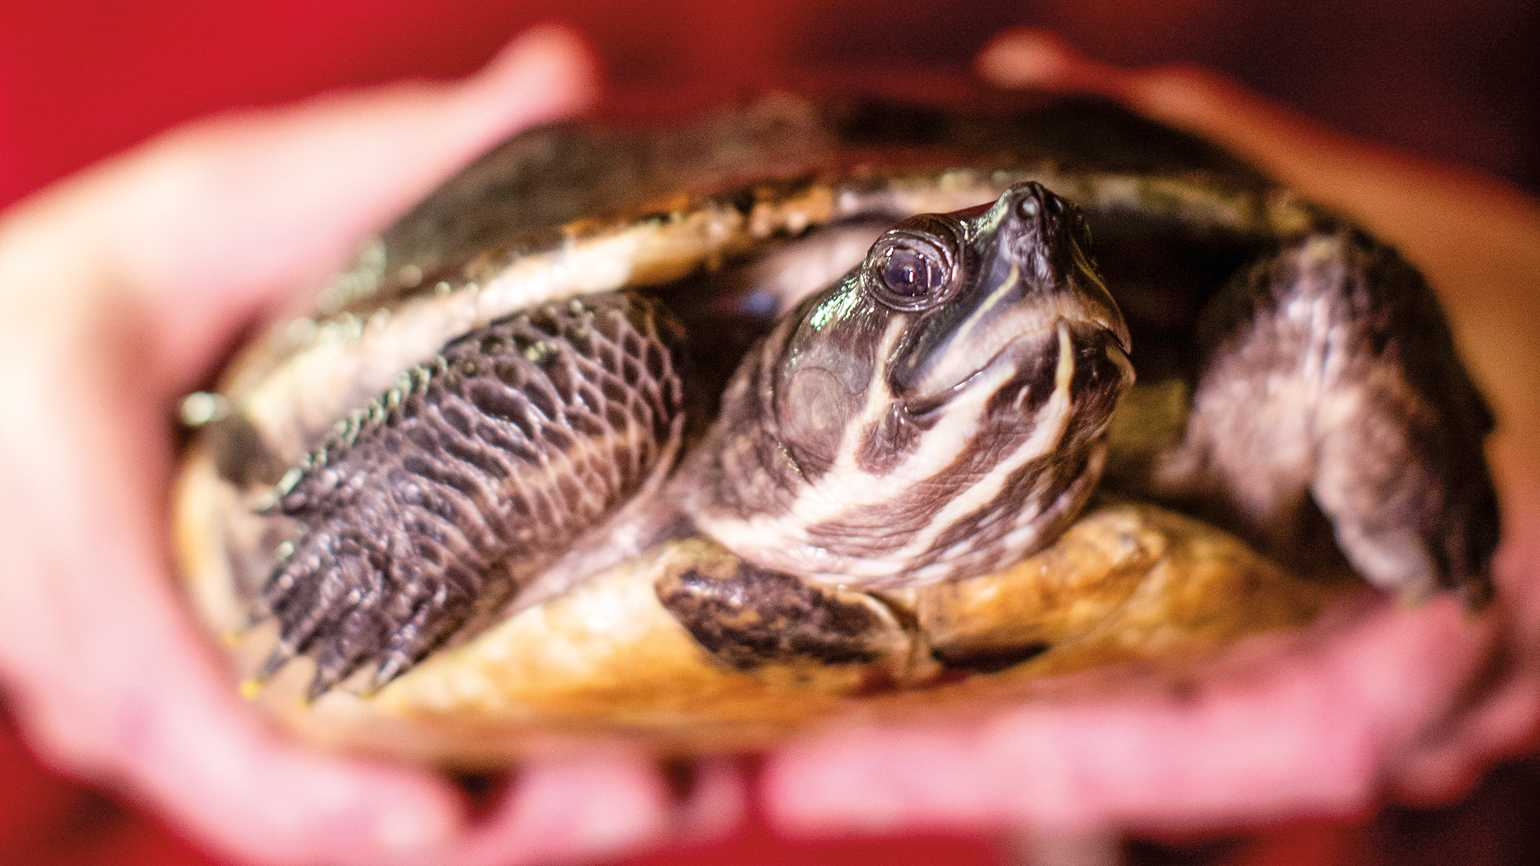 A close up of Diane the turtle.